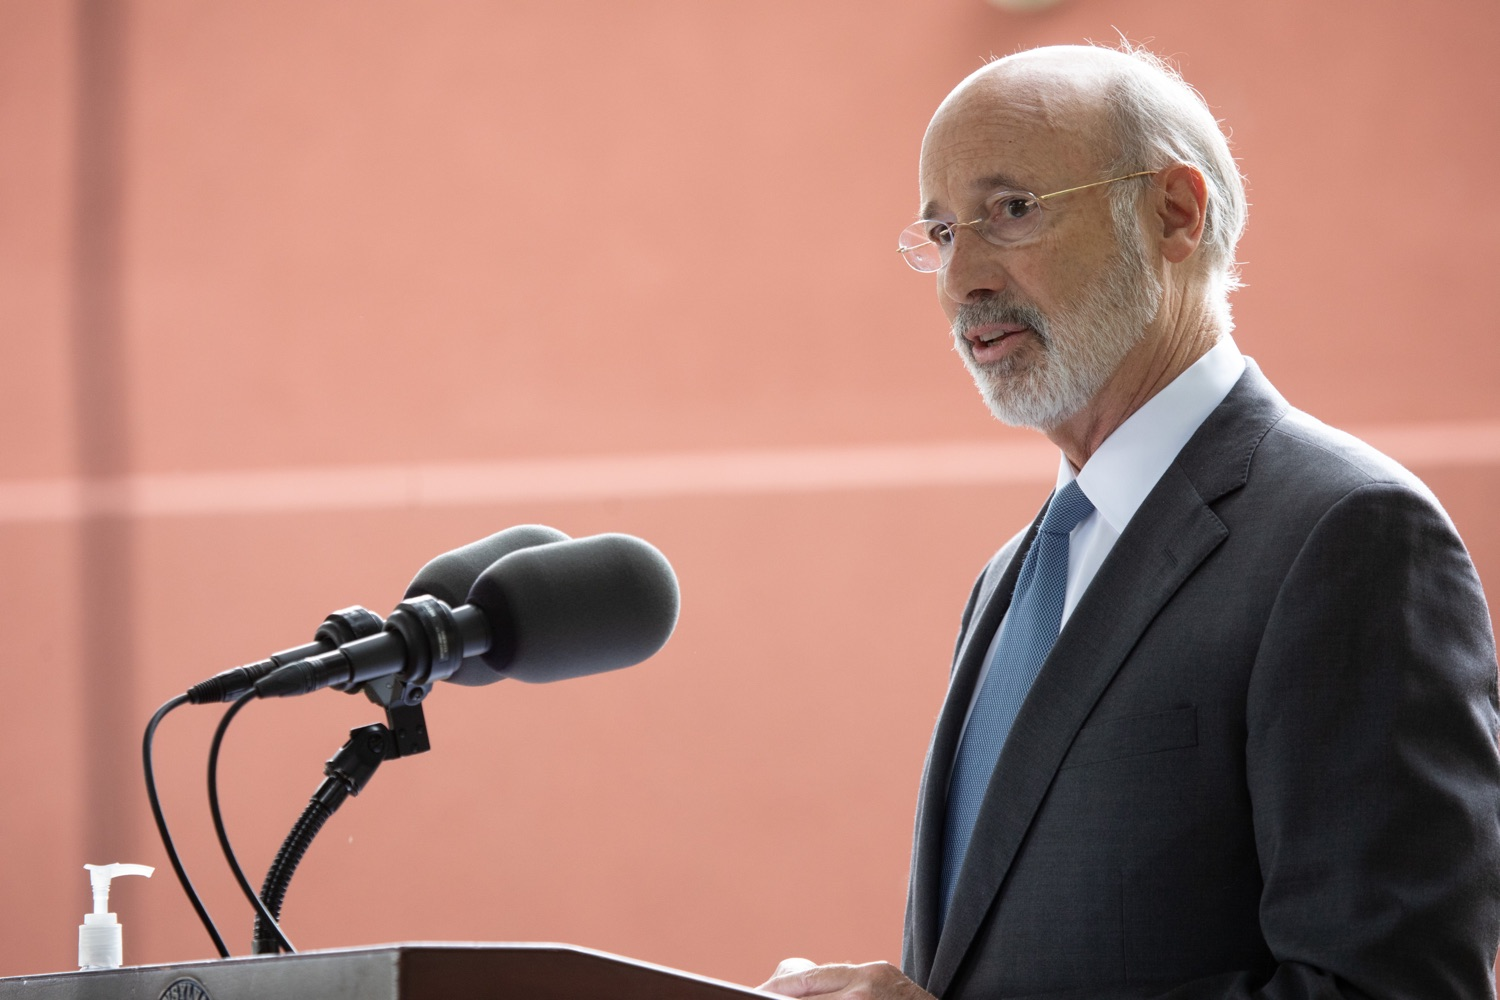 "<a href=""https://filesource.wostreaming.net/commonwealthofpa/photo/18178_GOV_Lancaster_Health_dz__07.jpg"" target=""_blank"">⇣ Download Photo<br></a>Pennsylvania Governor Tom Wolf speaking at the event.  Governor Tom Wolf today visited Lancaster Health Center, a federally qualified health center, to thank staff for their work to ensure the communitys most vulnerable receive care during COVID-19 and year-round.  Harrisburg, PA  July 24, 2020"